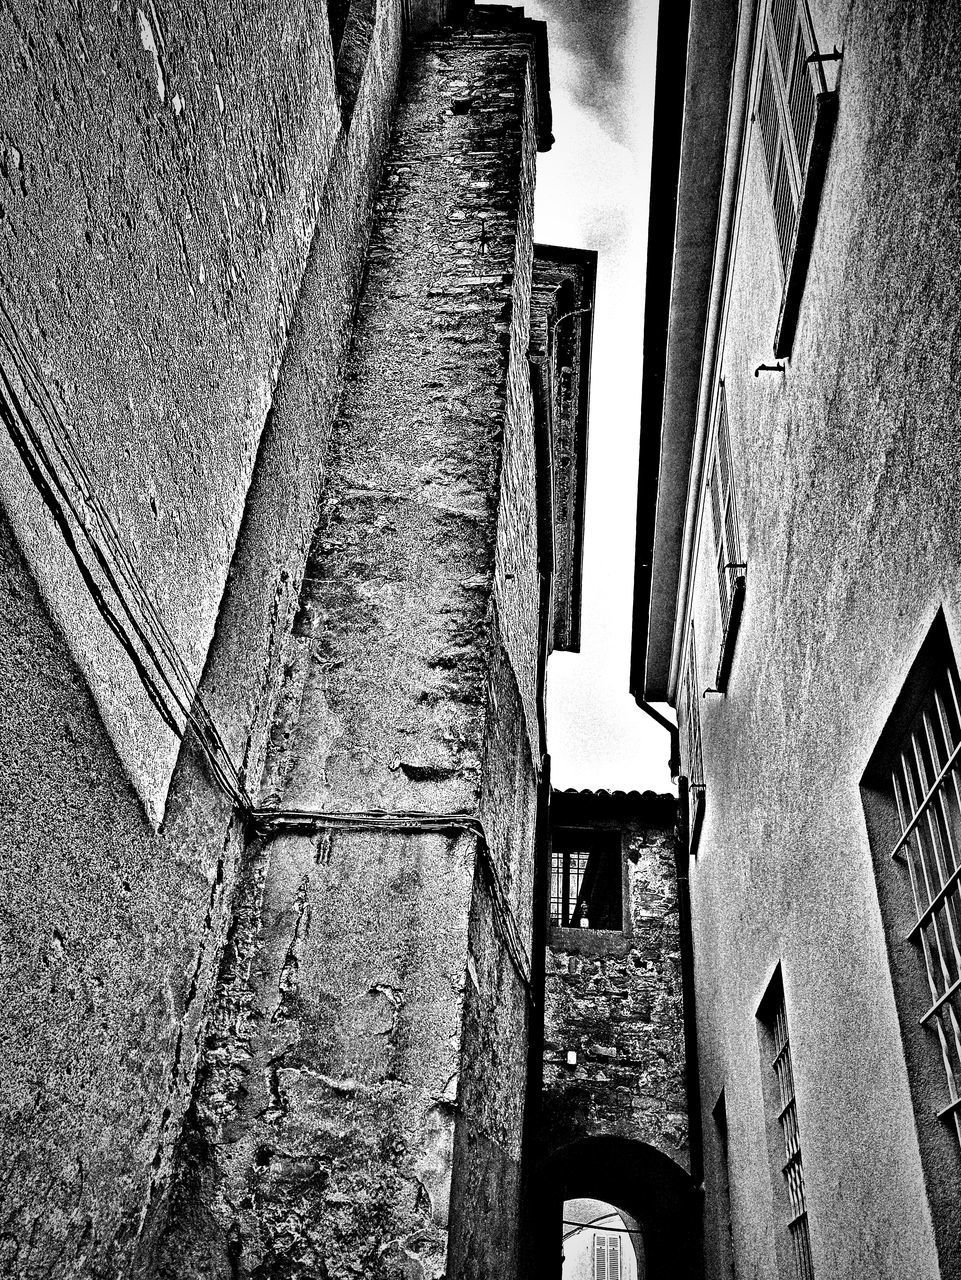 LOW ANGLE VIEW OF OLD BUILDINGS AGAINST WALL